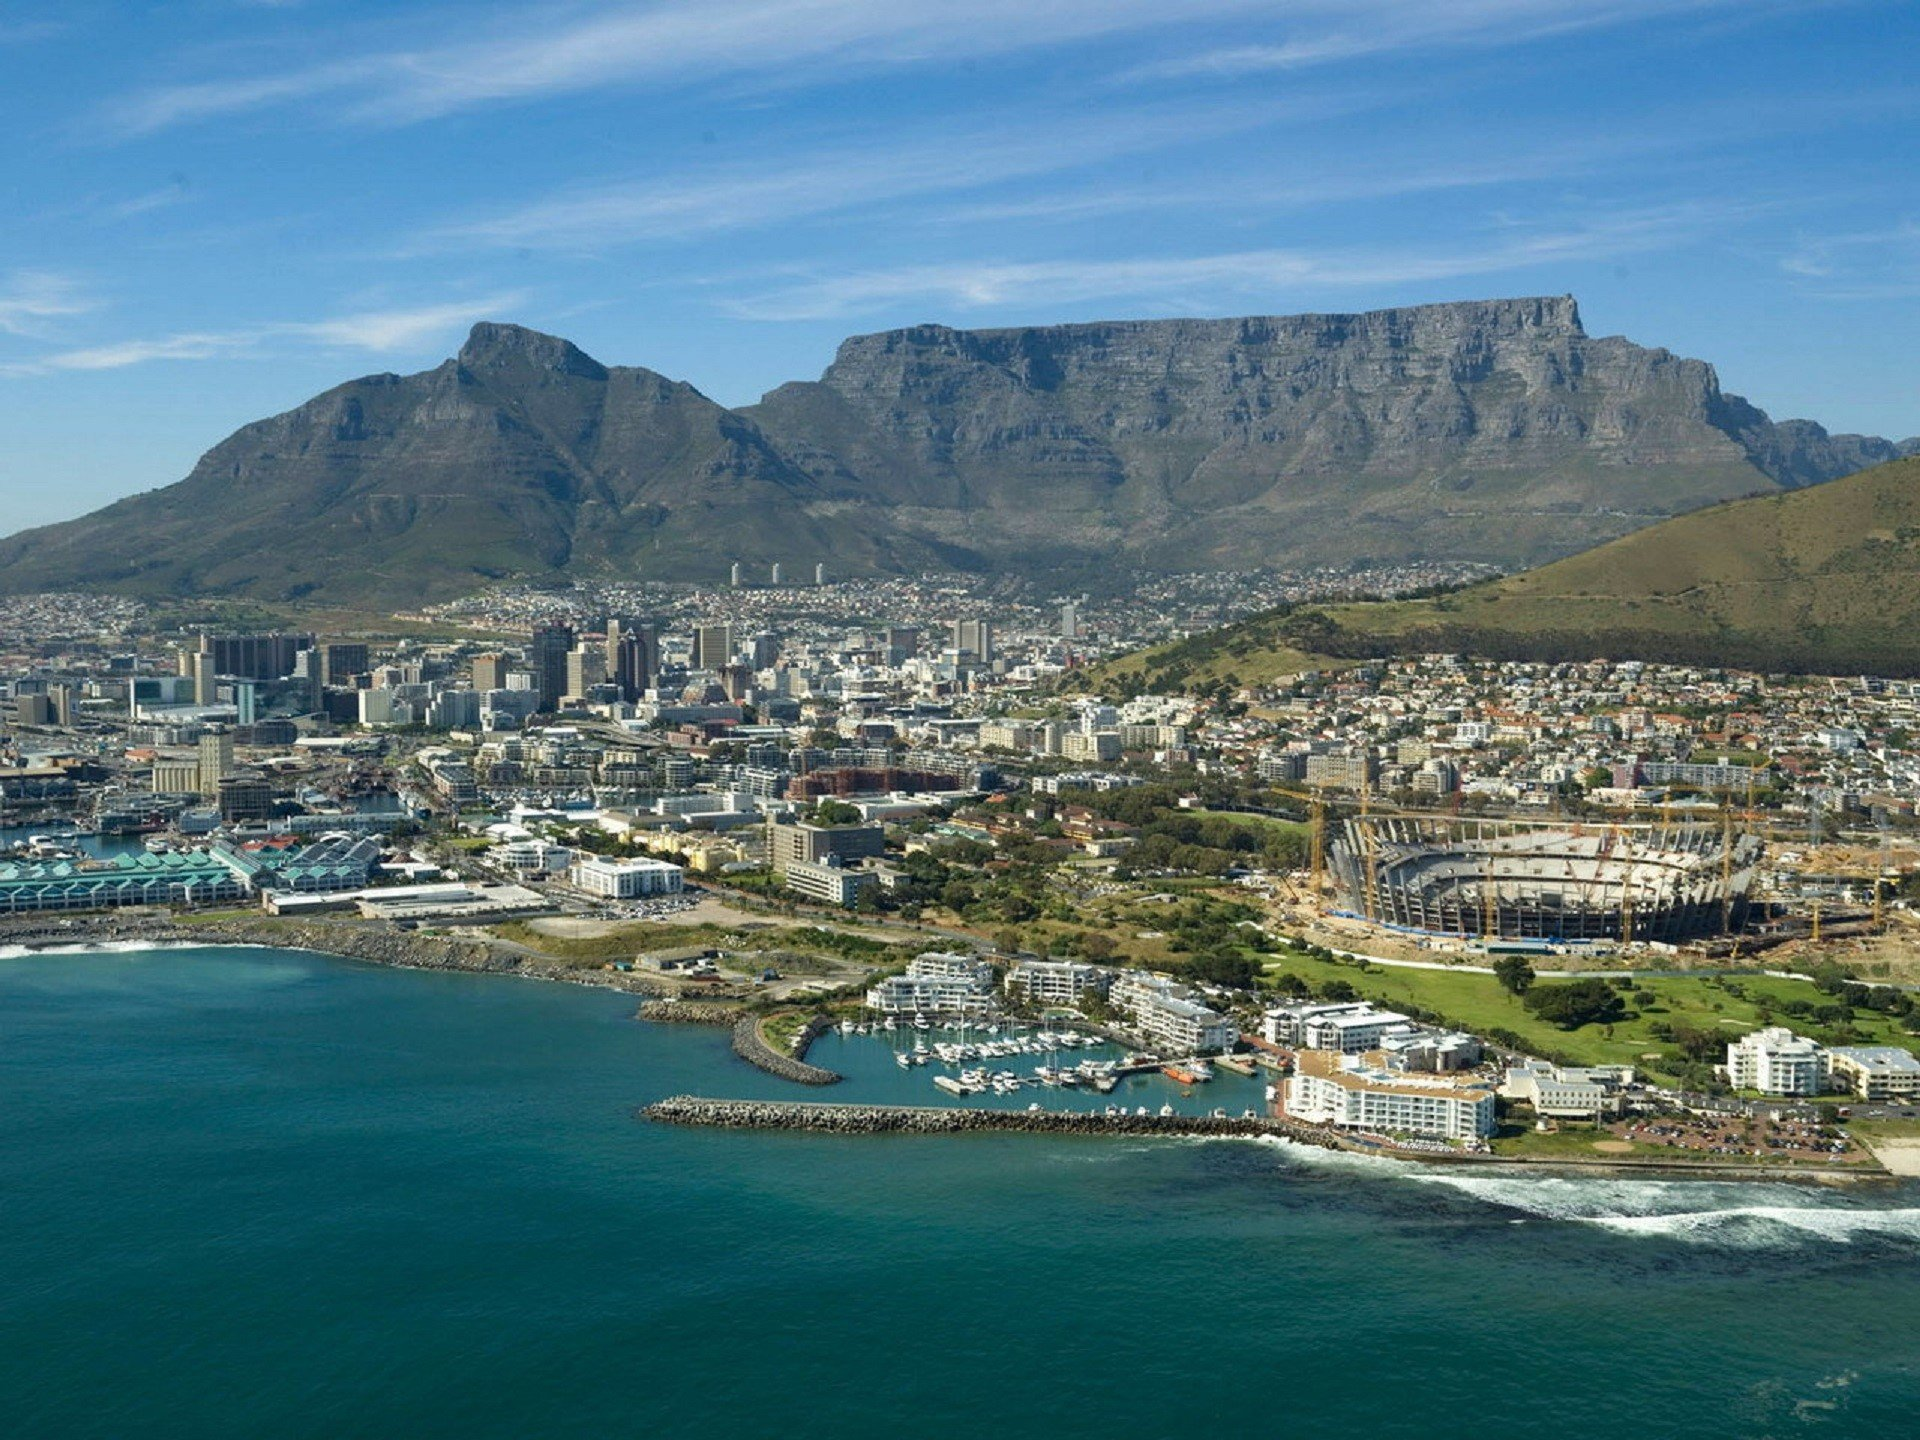 Cape Town Computer Wallpapers